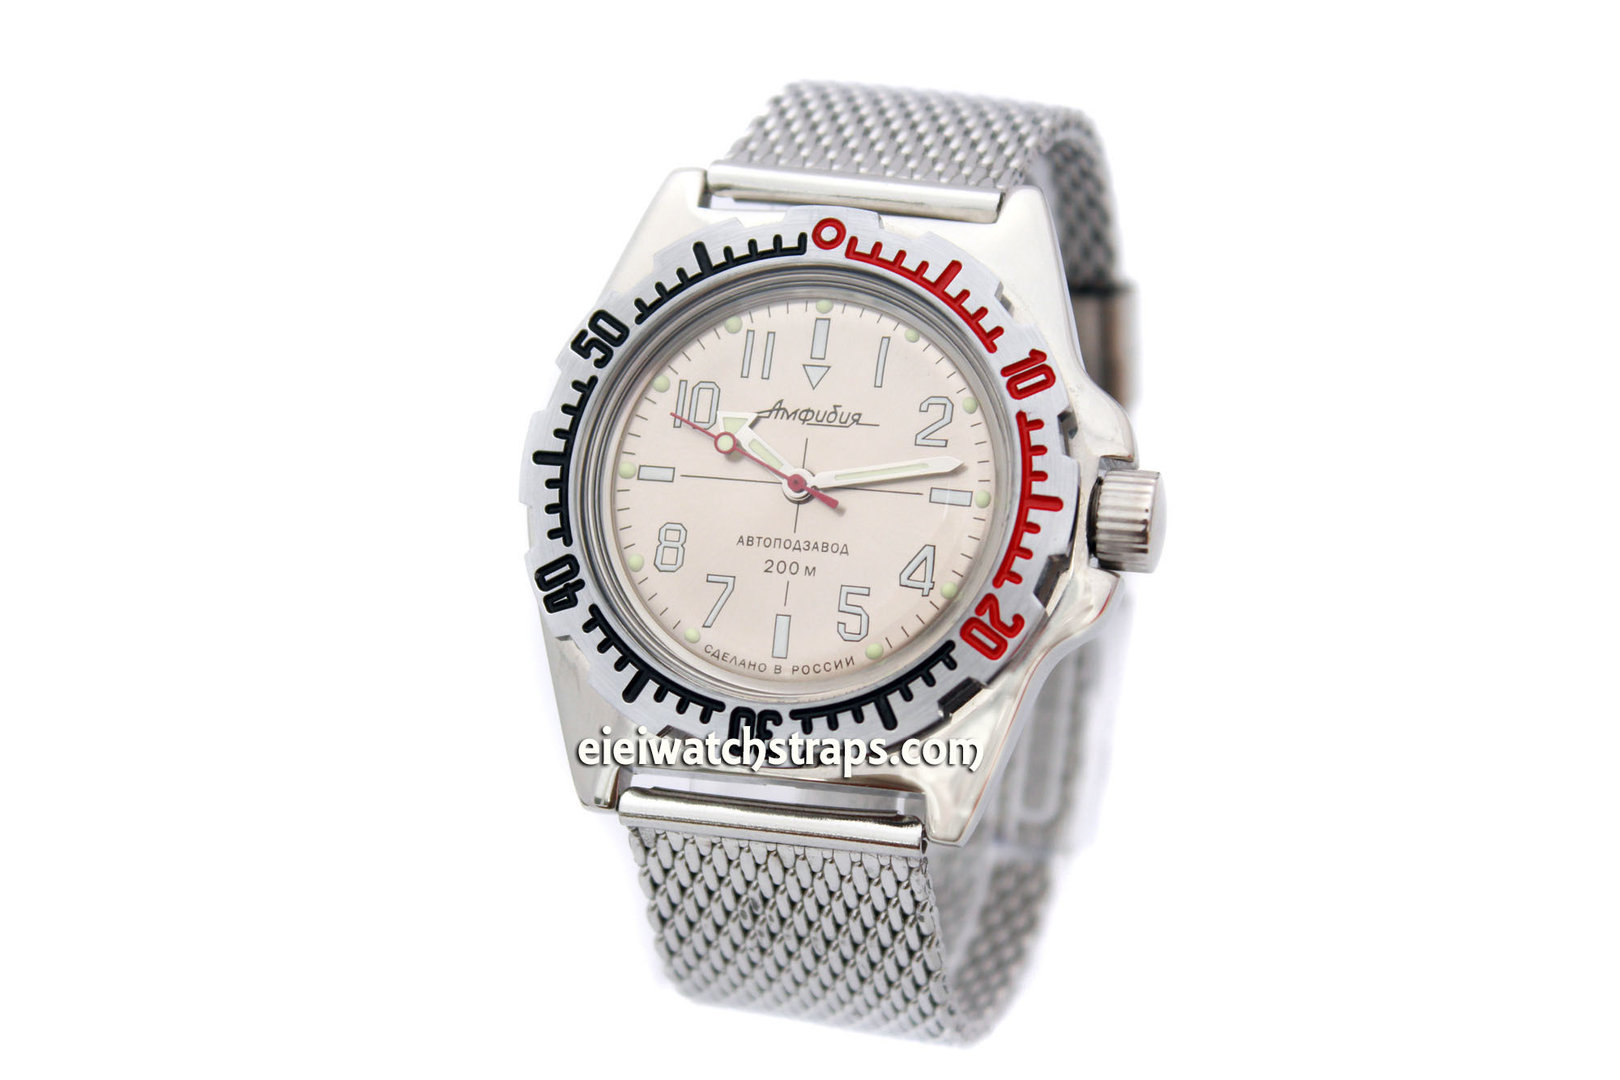 Stainless steel watch mesh bracelet for vostok watches for Stainless steel watch